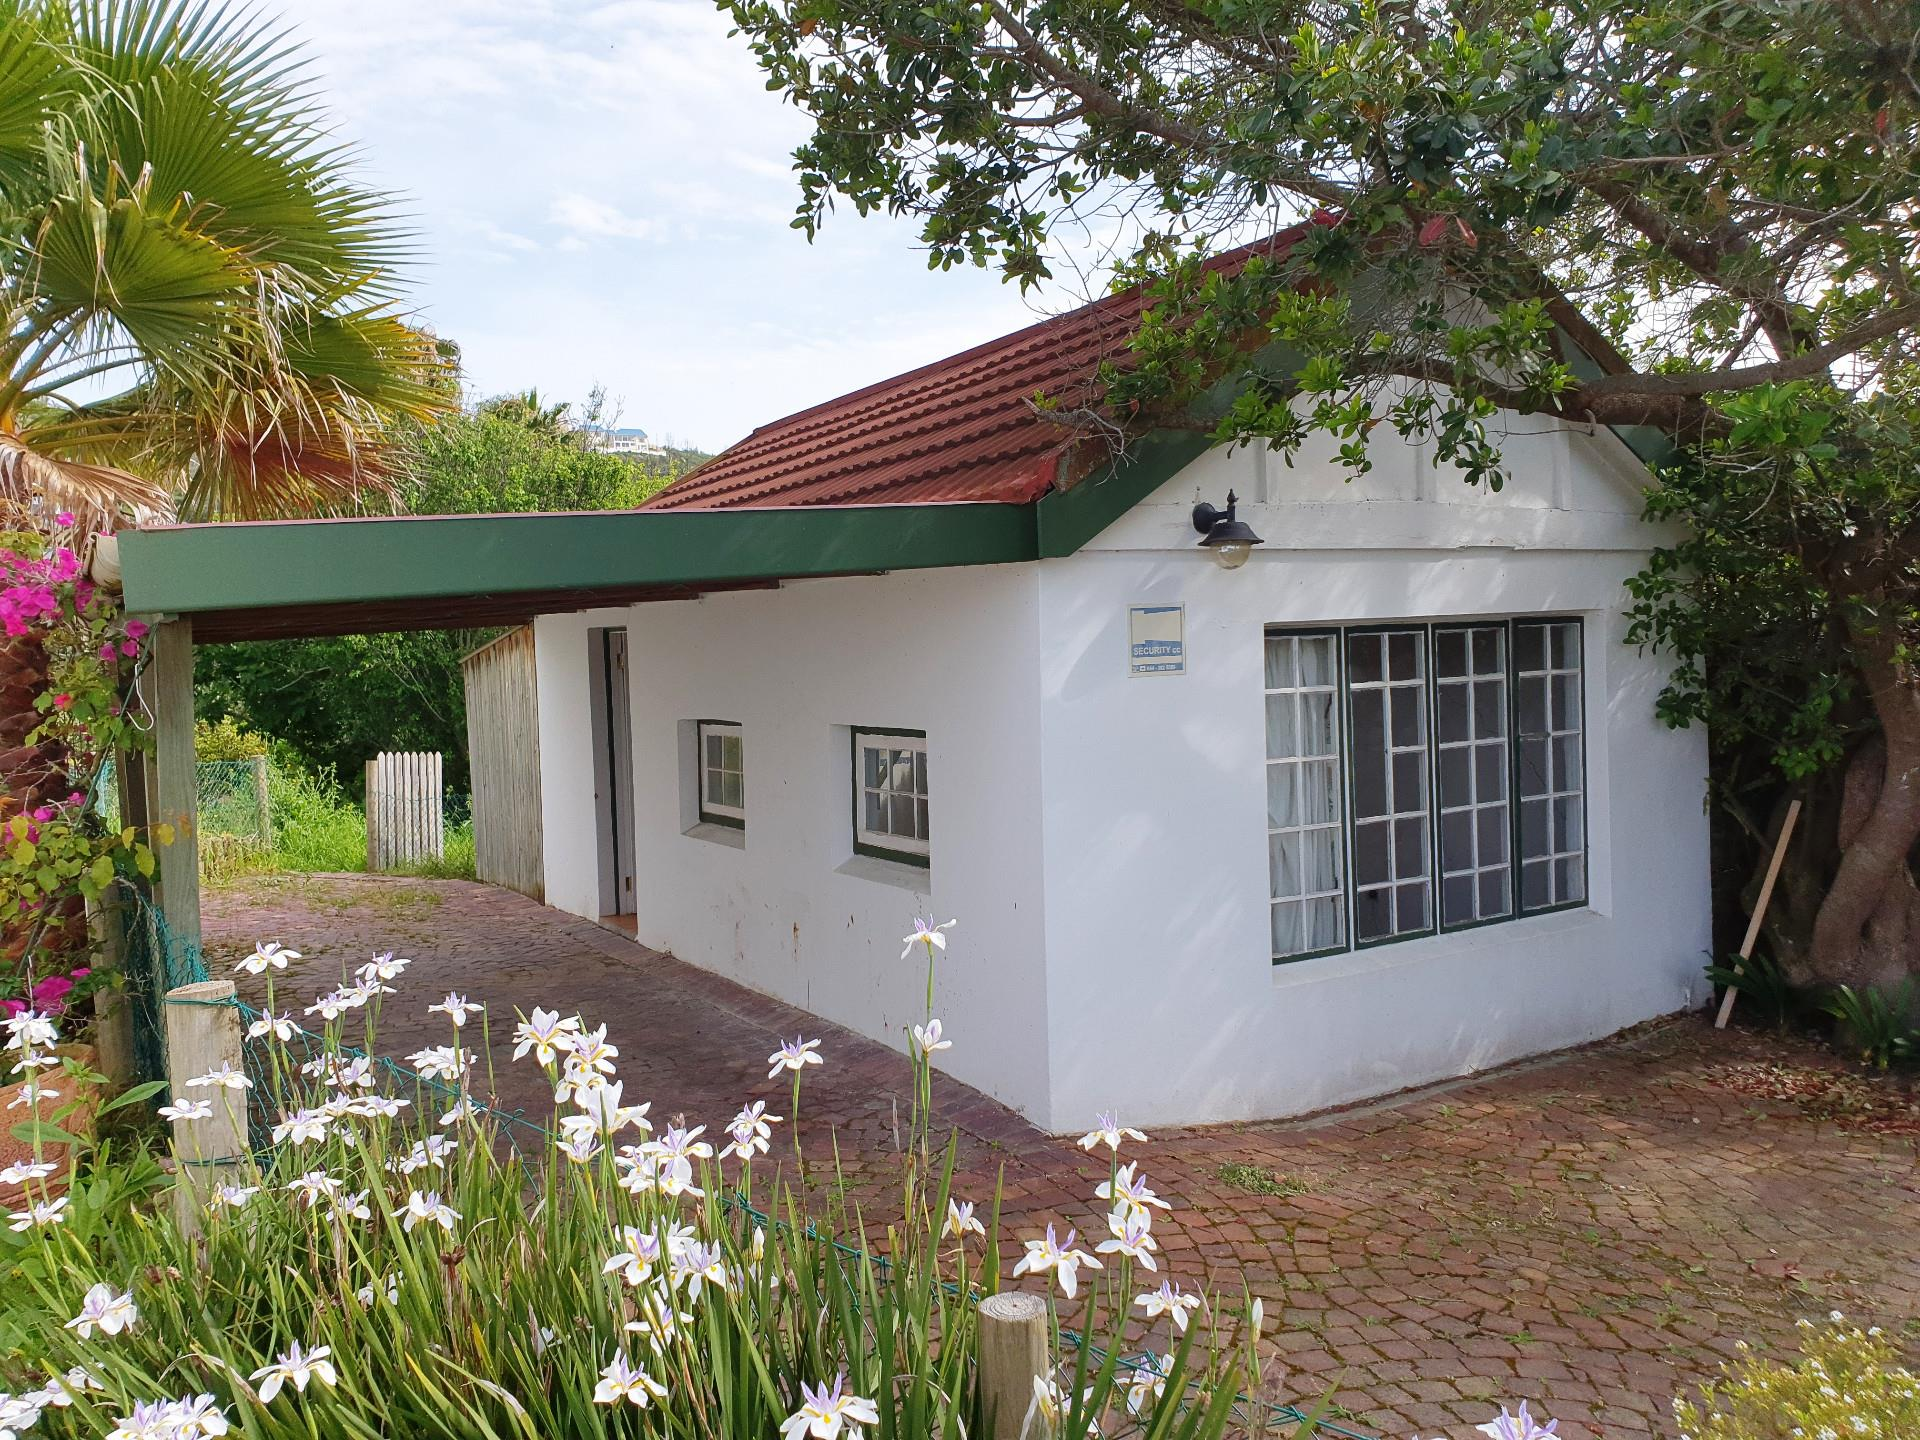 3 Bedroom House For Sale in Knysna Central